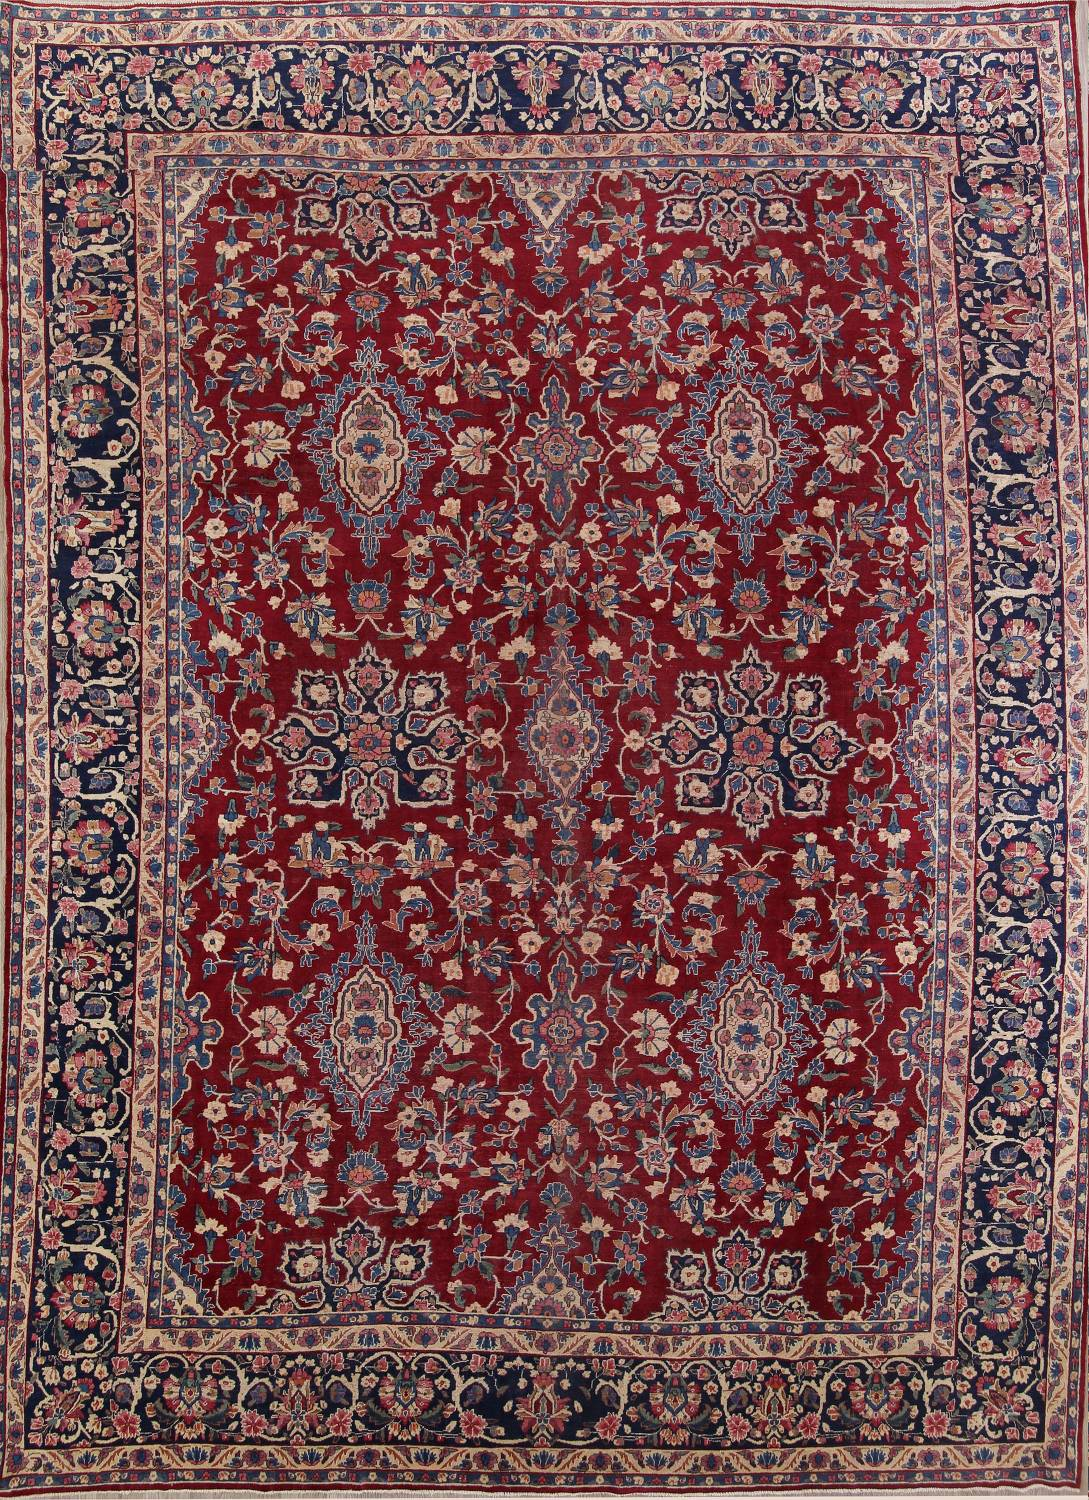 All-Over Floral 11x16 Yazd Persian Area Rug image 1